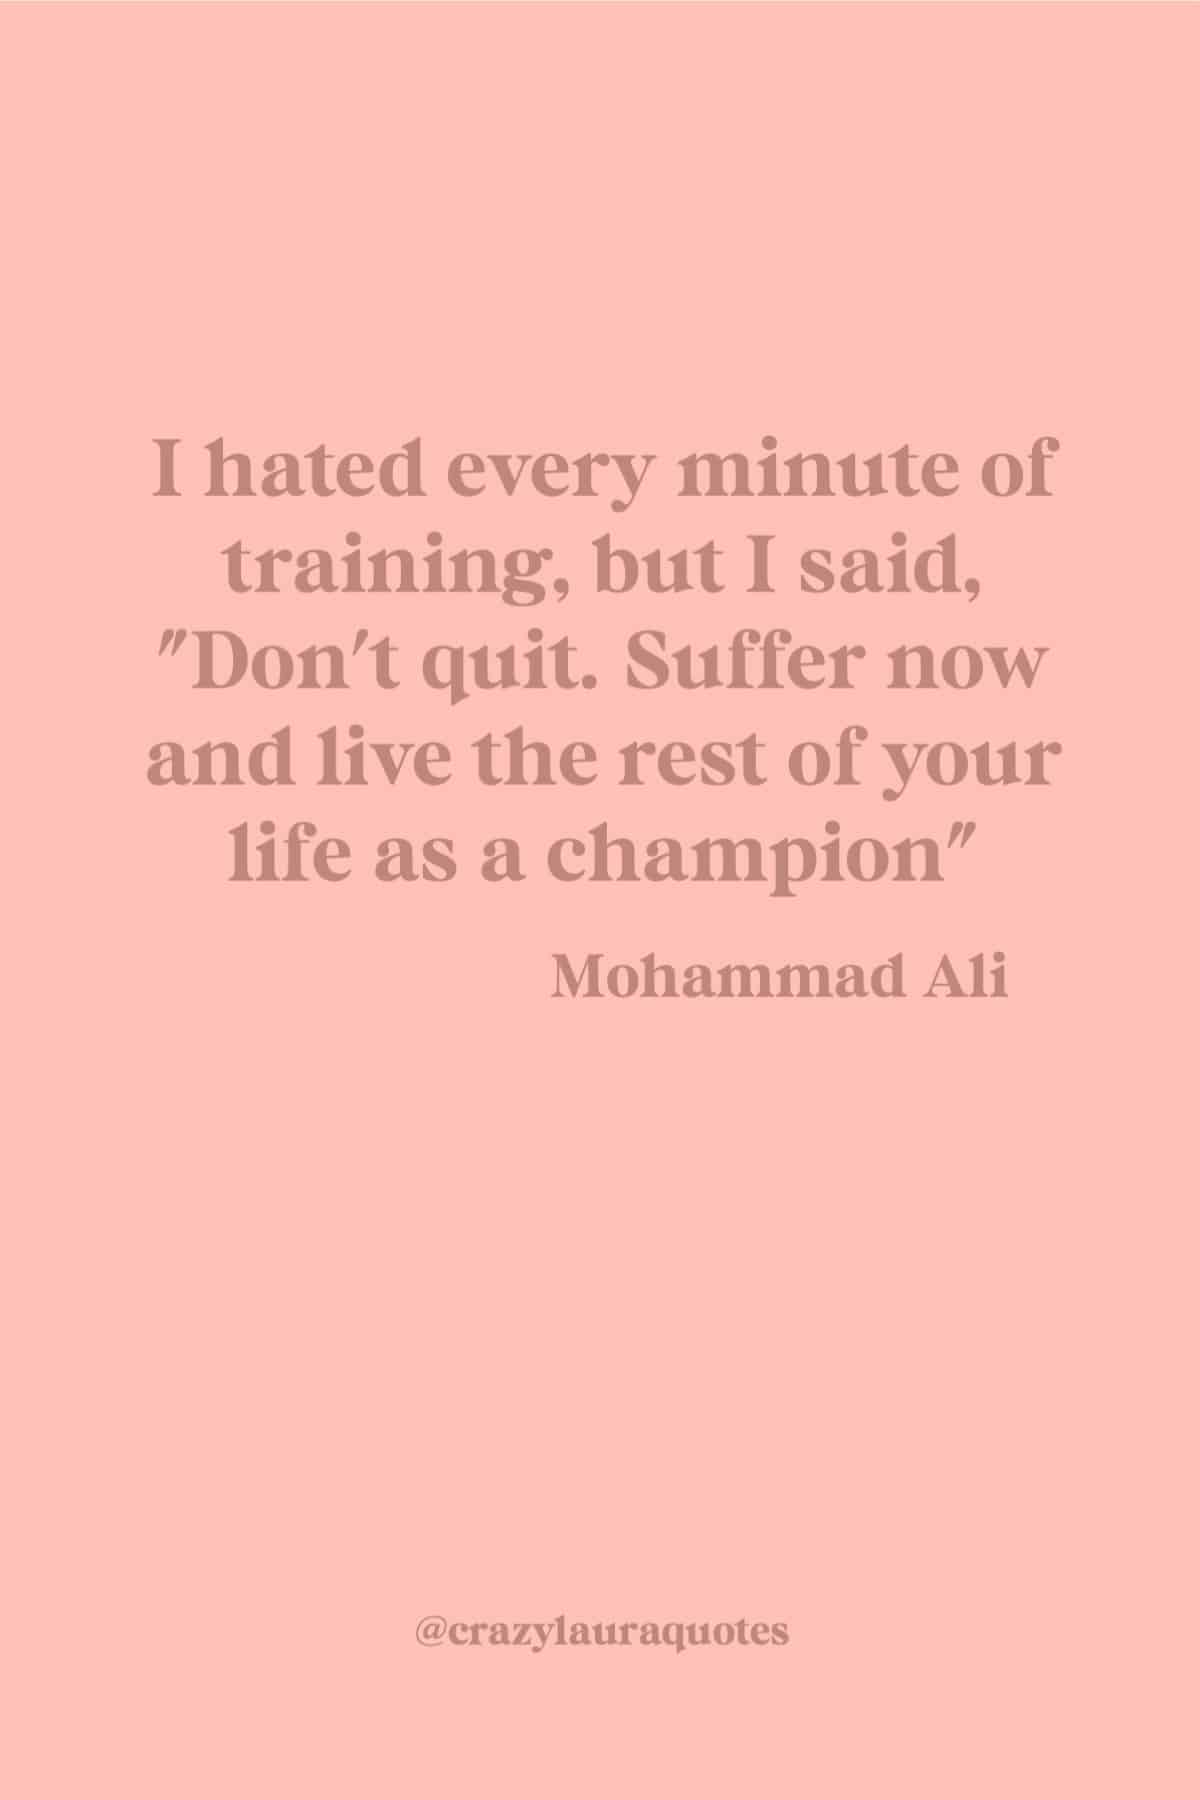 mohammad ali quote about being a champion